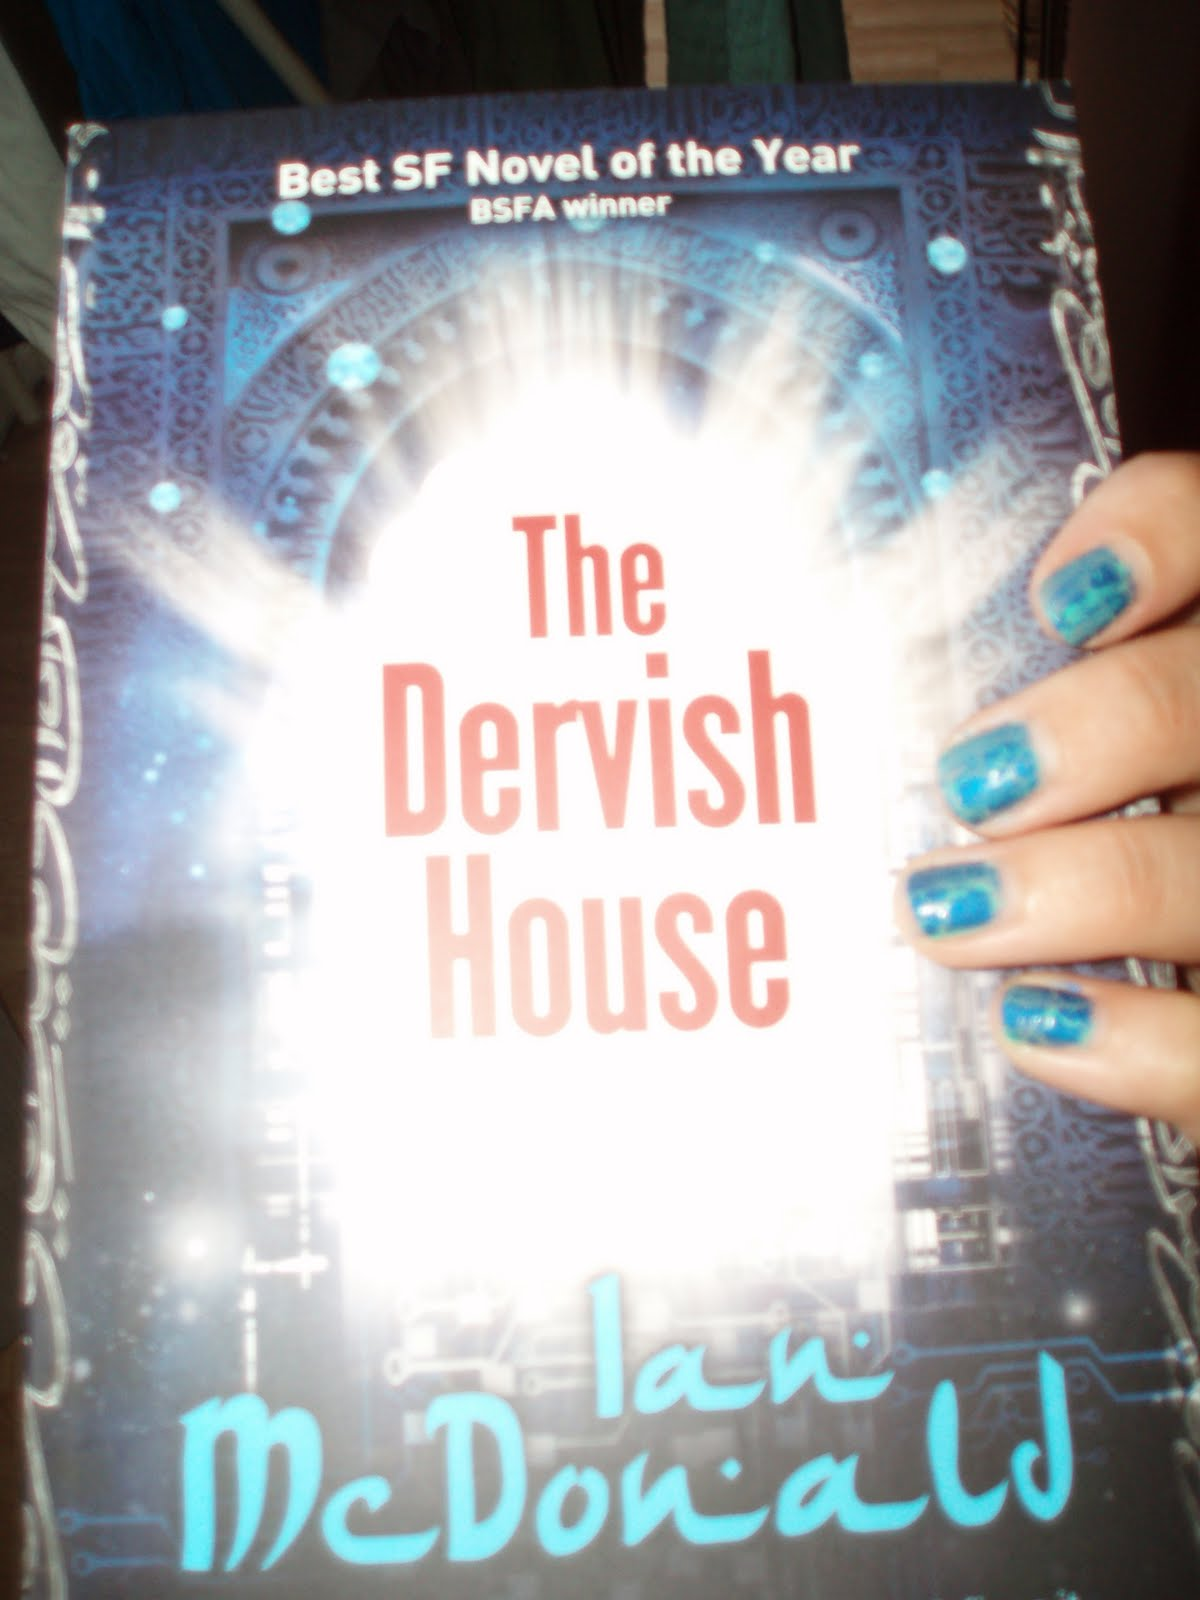 vvb32 reads: Books & Nails: The Dervish House by Ian McDonald